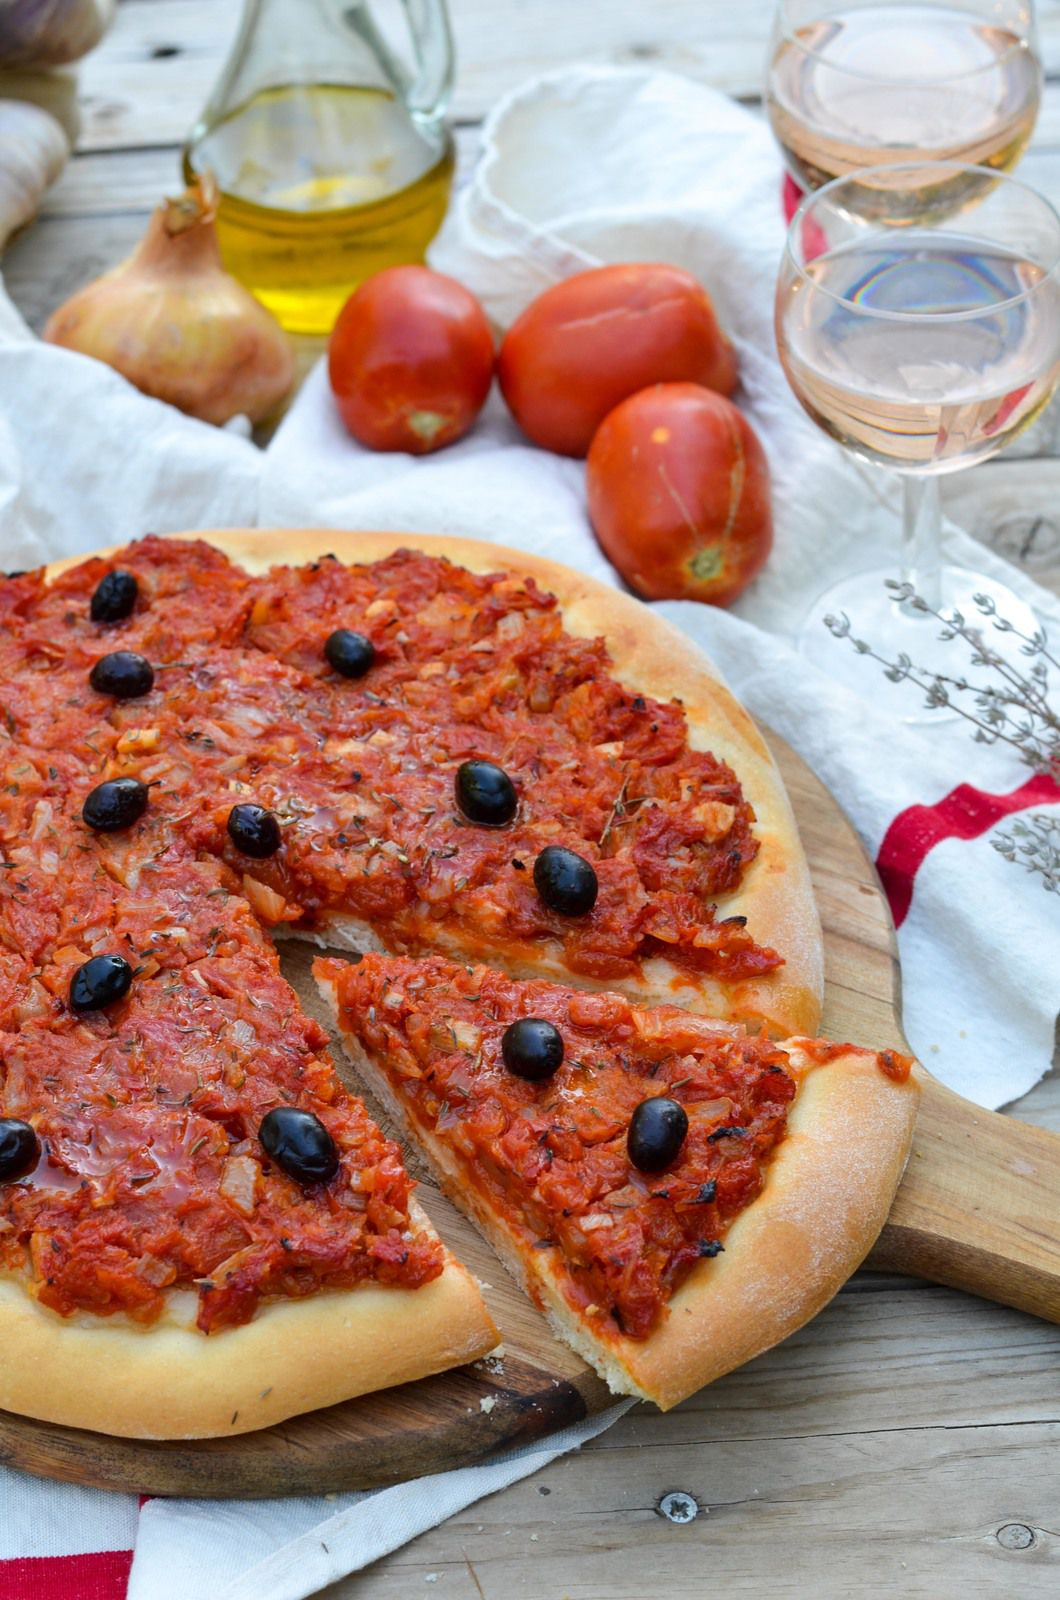 Recette de Papy mugeaud. - Page 3 Image%2F0931490%2F20200914%2Fob_eb1594_pichade-menton-tomate